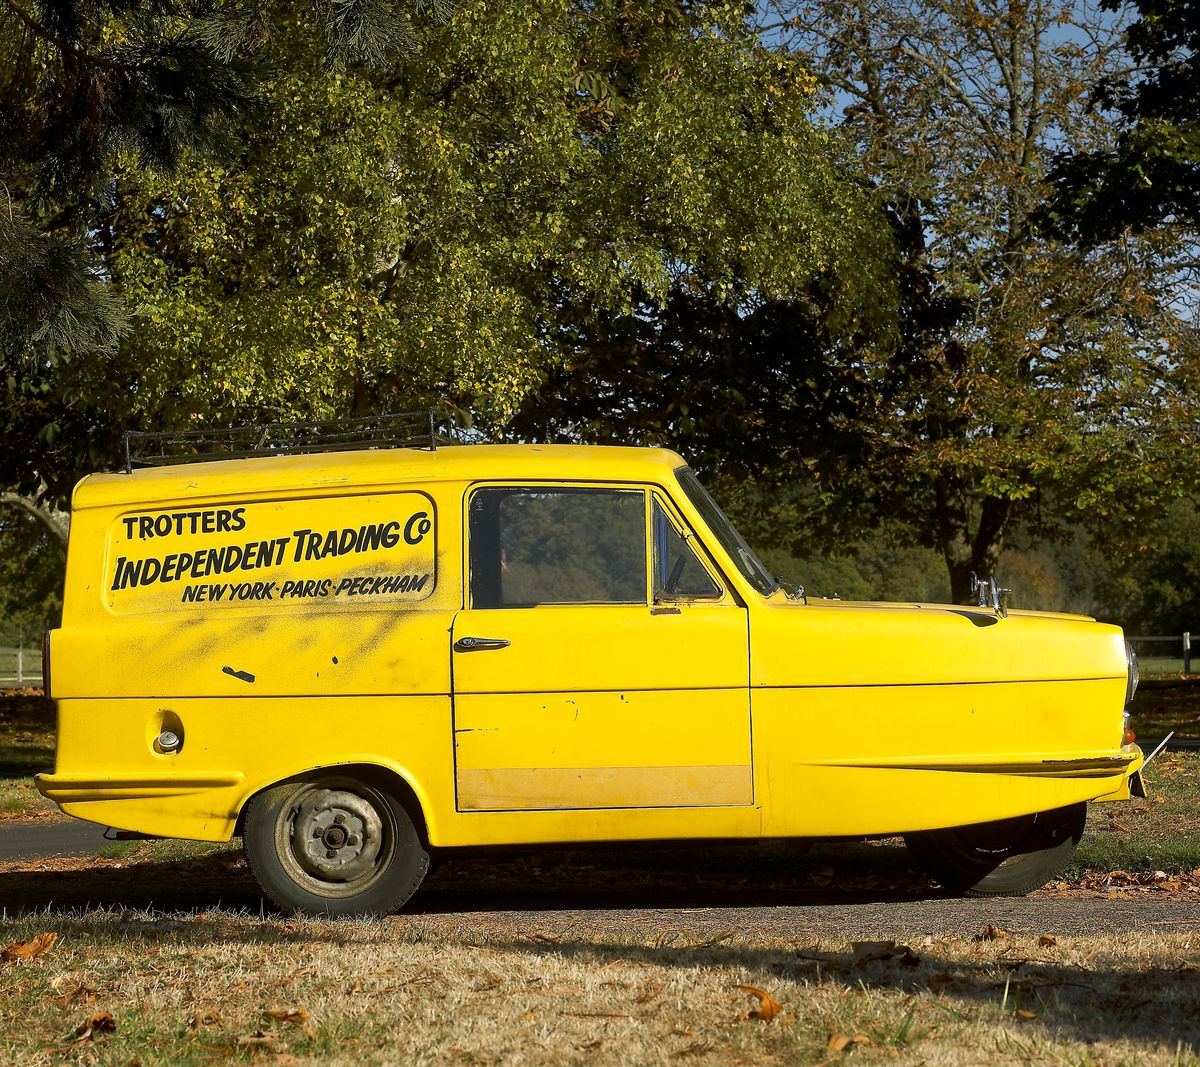 Trotter's Reliant Van from 'Only Fools and Horses' tv programme